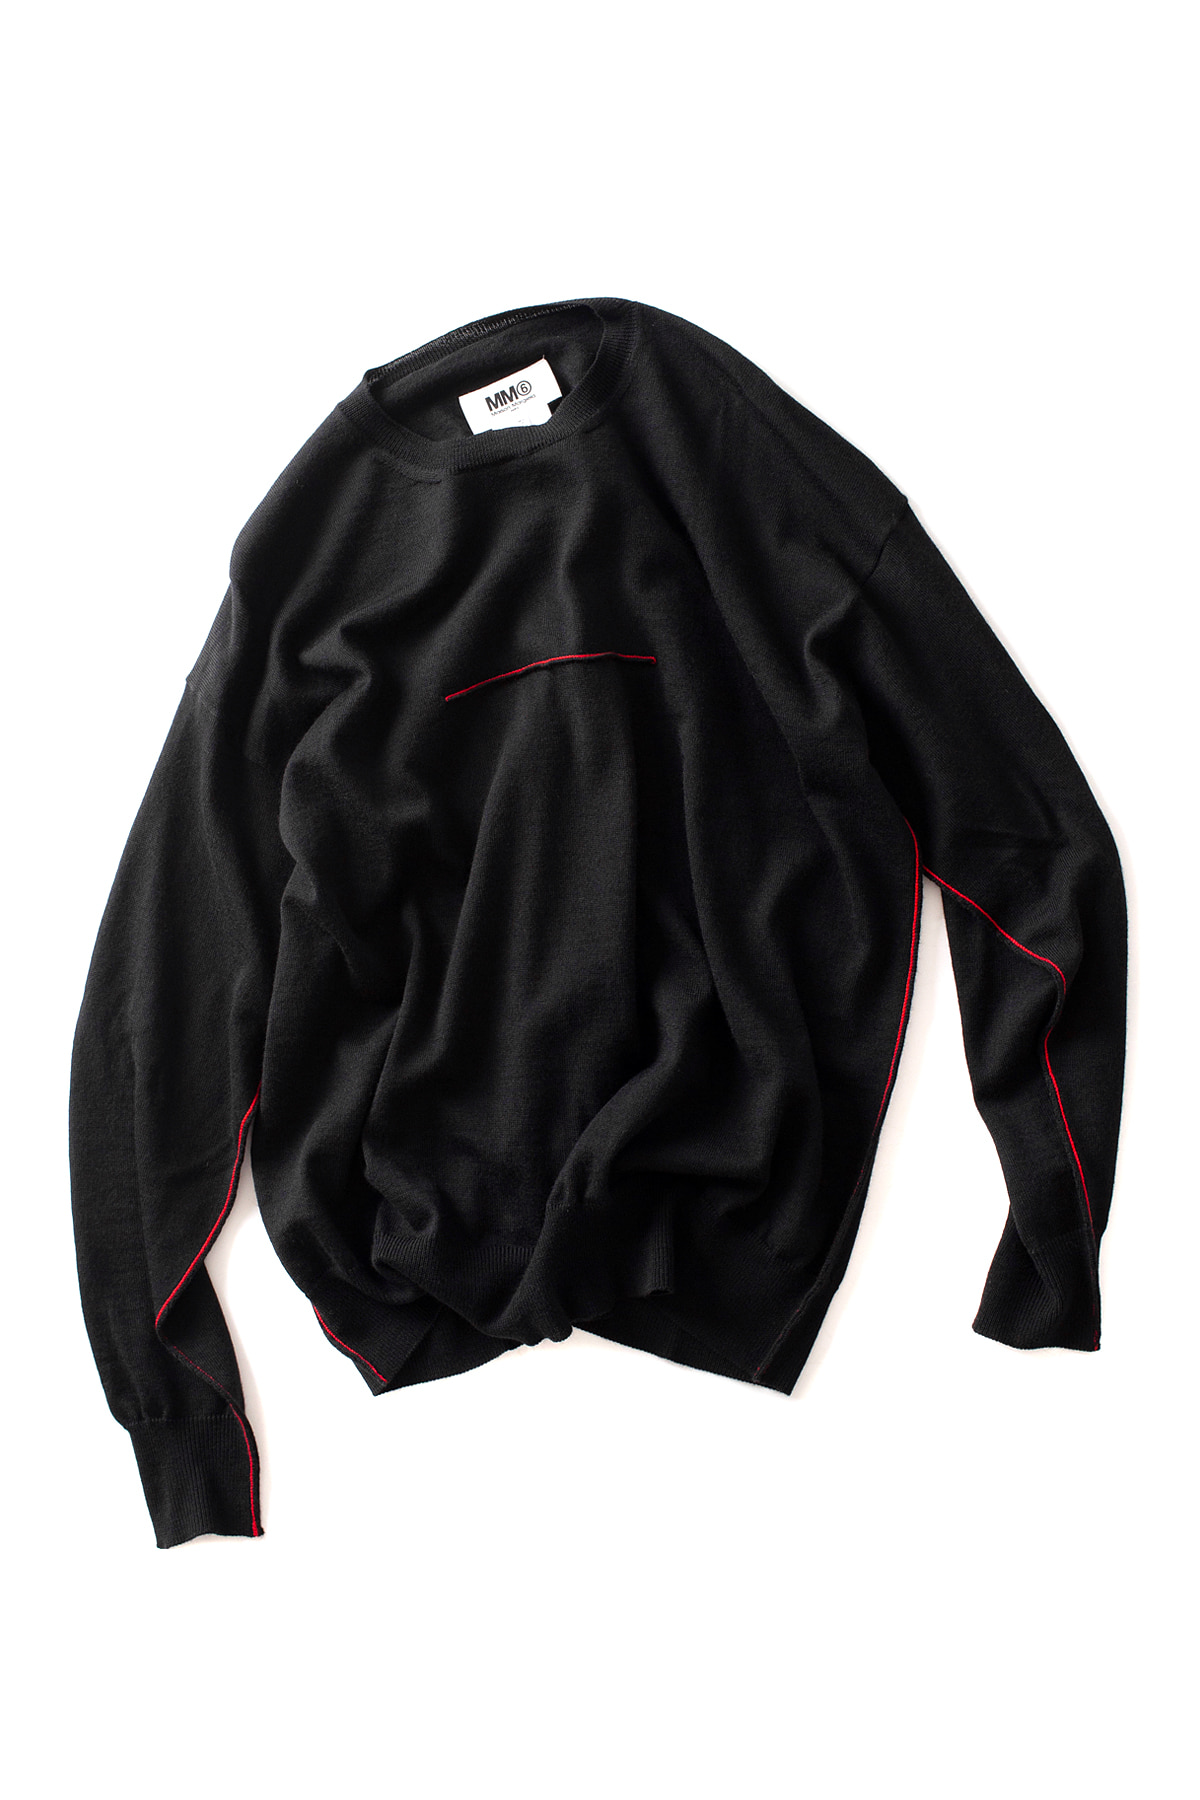 MM6 Maison Margiela : Line Pullover (Black)